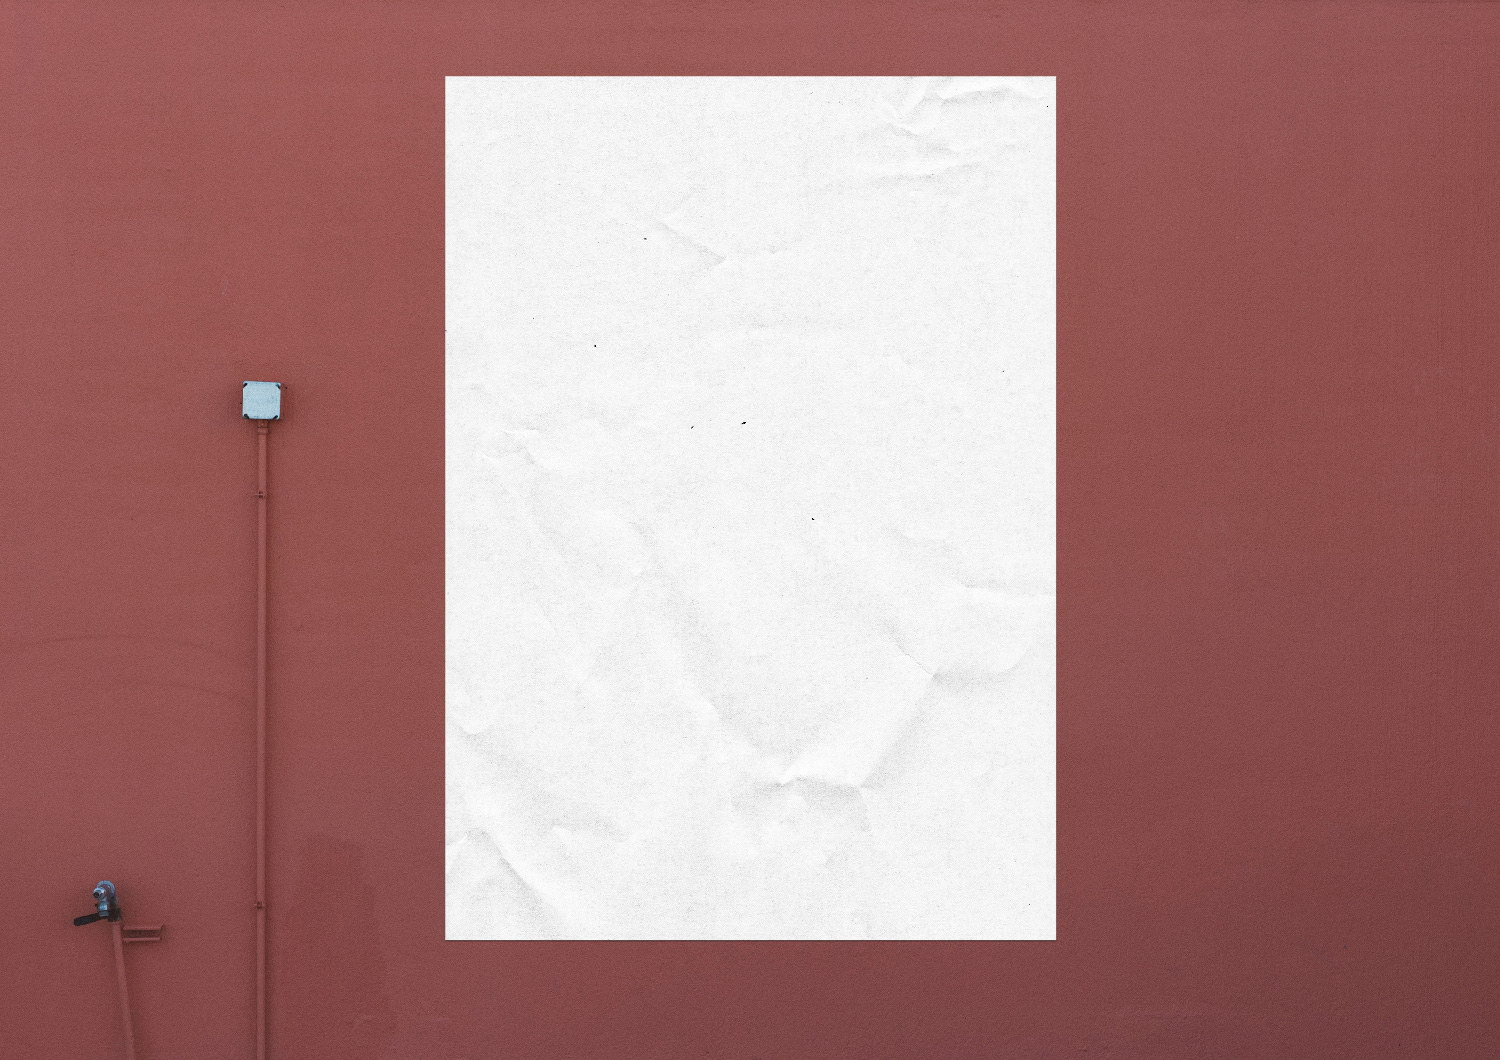 Wall-Poster-Mock-Up-02